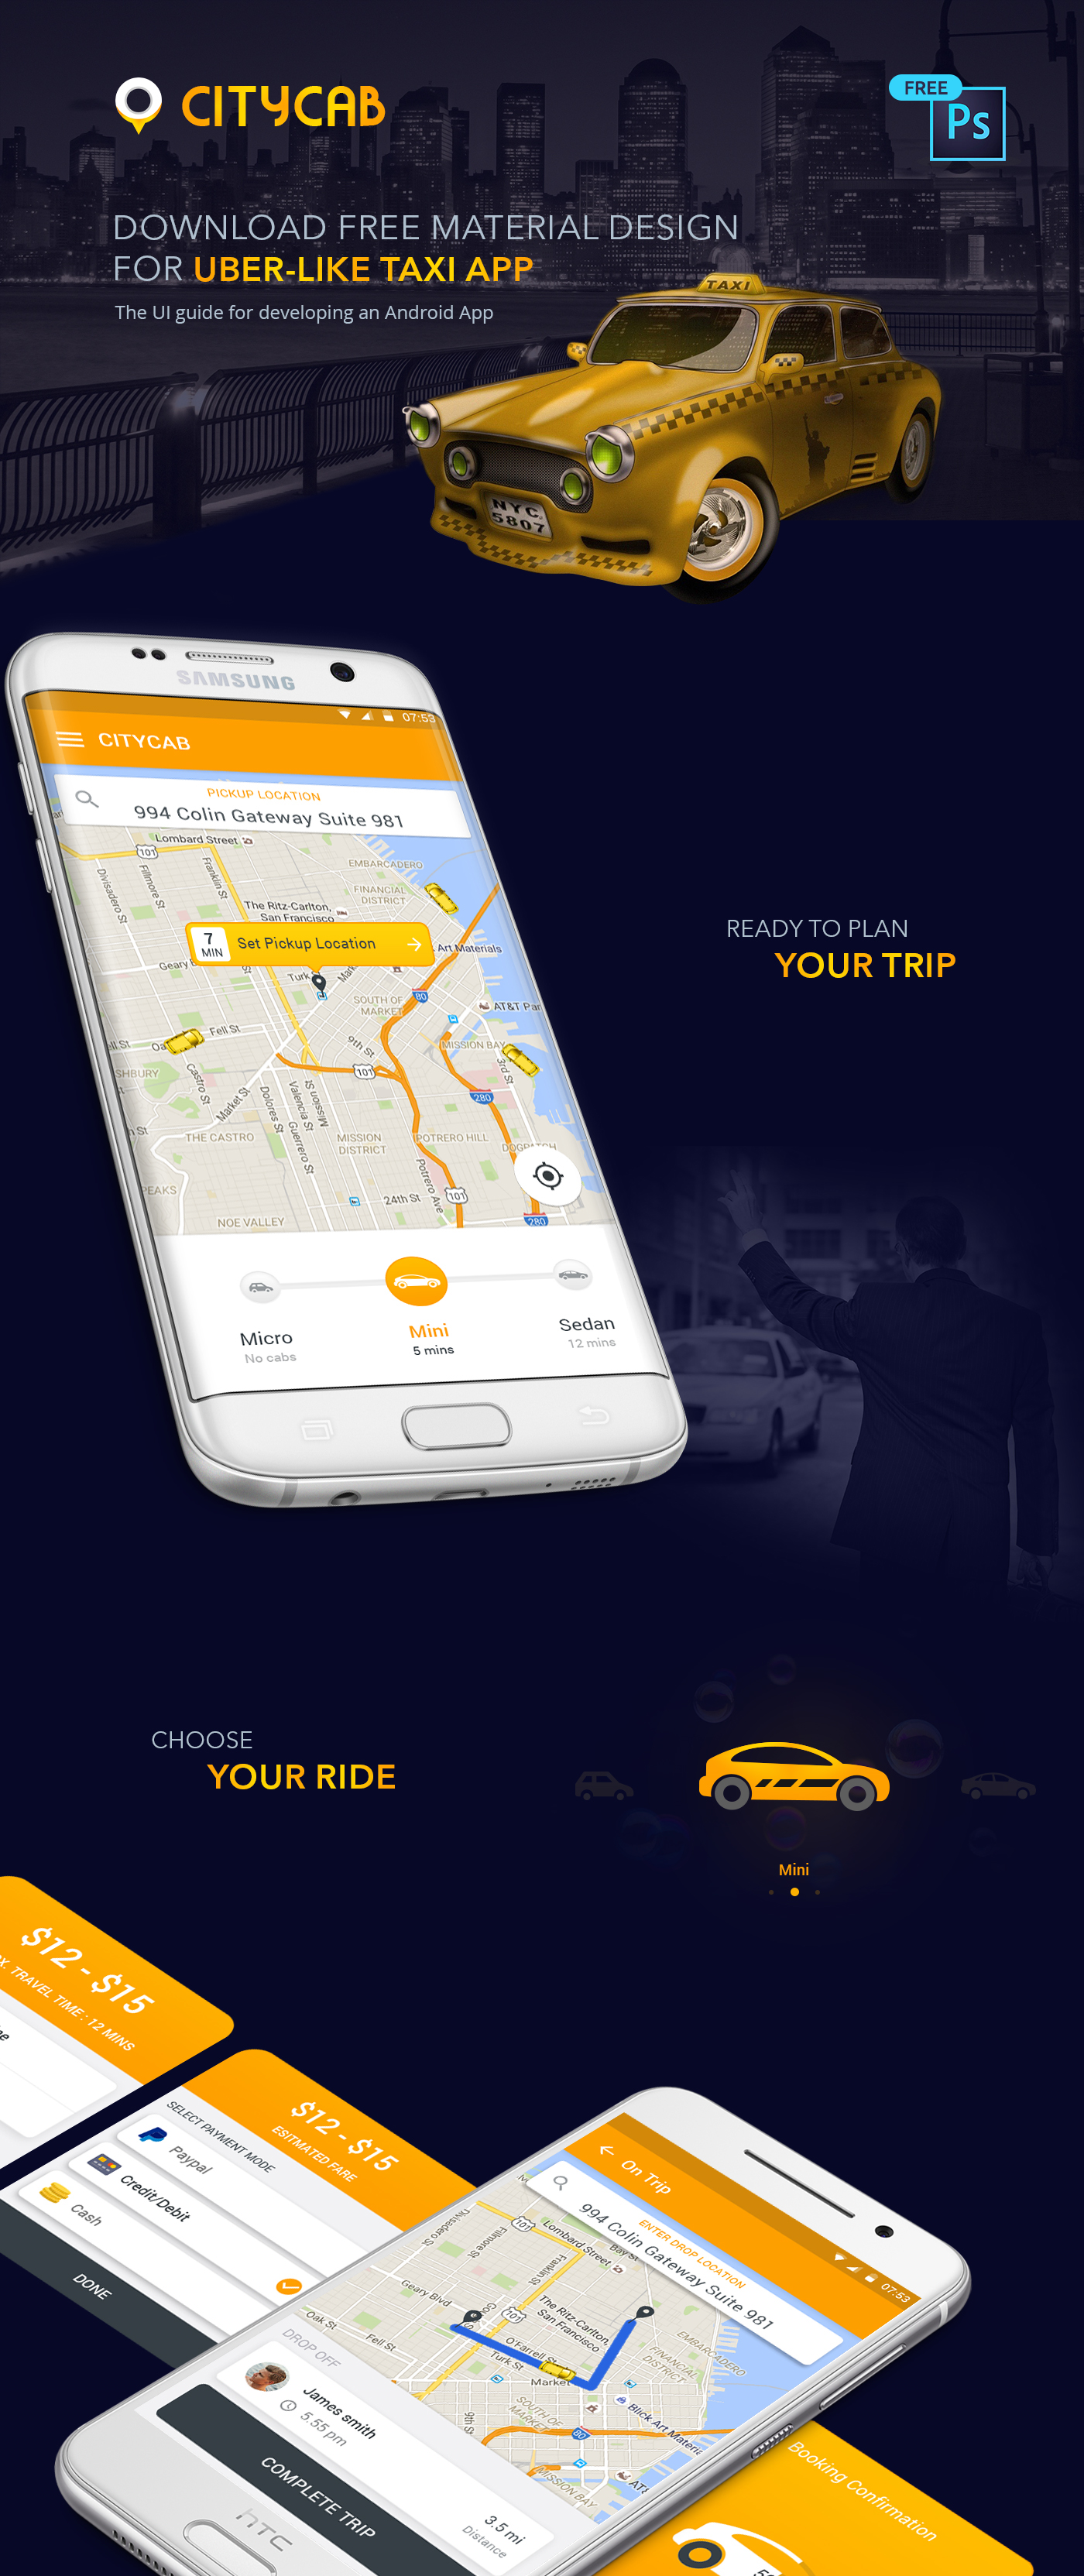 Taxi App Design Template For Android Free - Somurich com